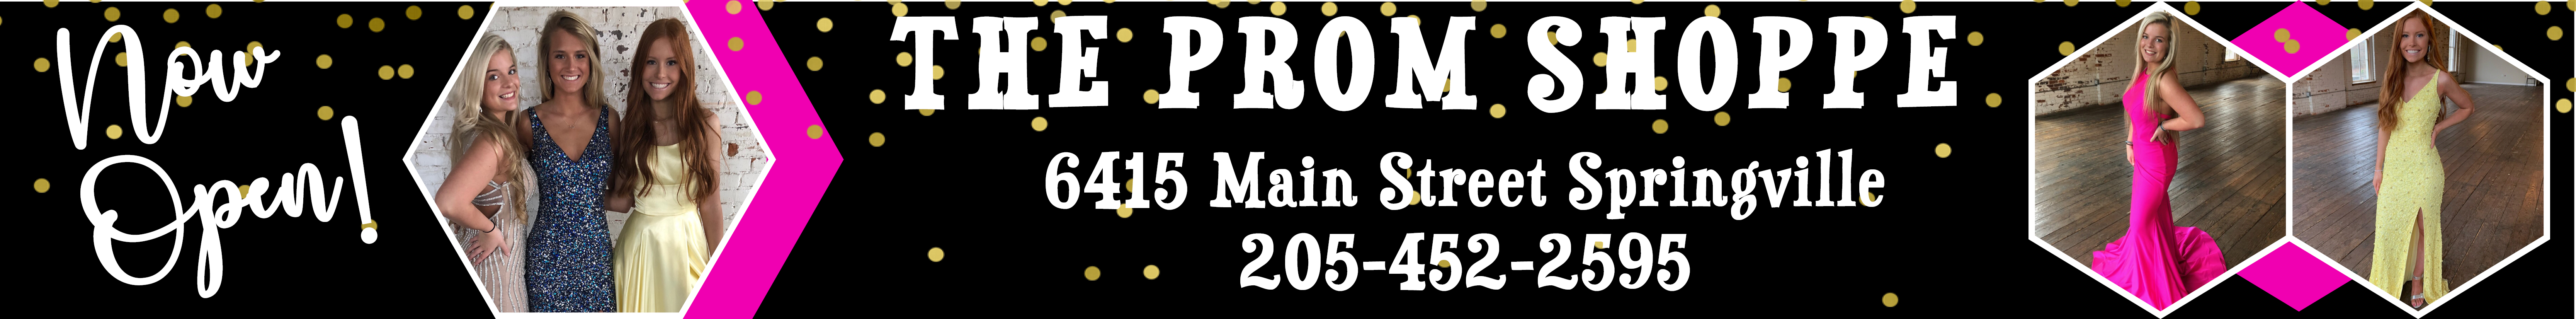 The Prom Shoppe